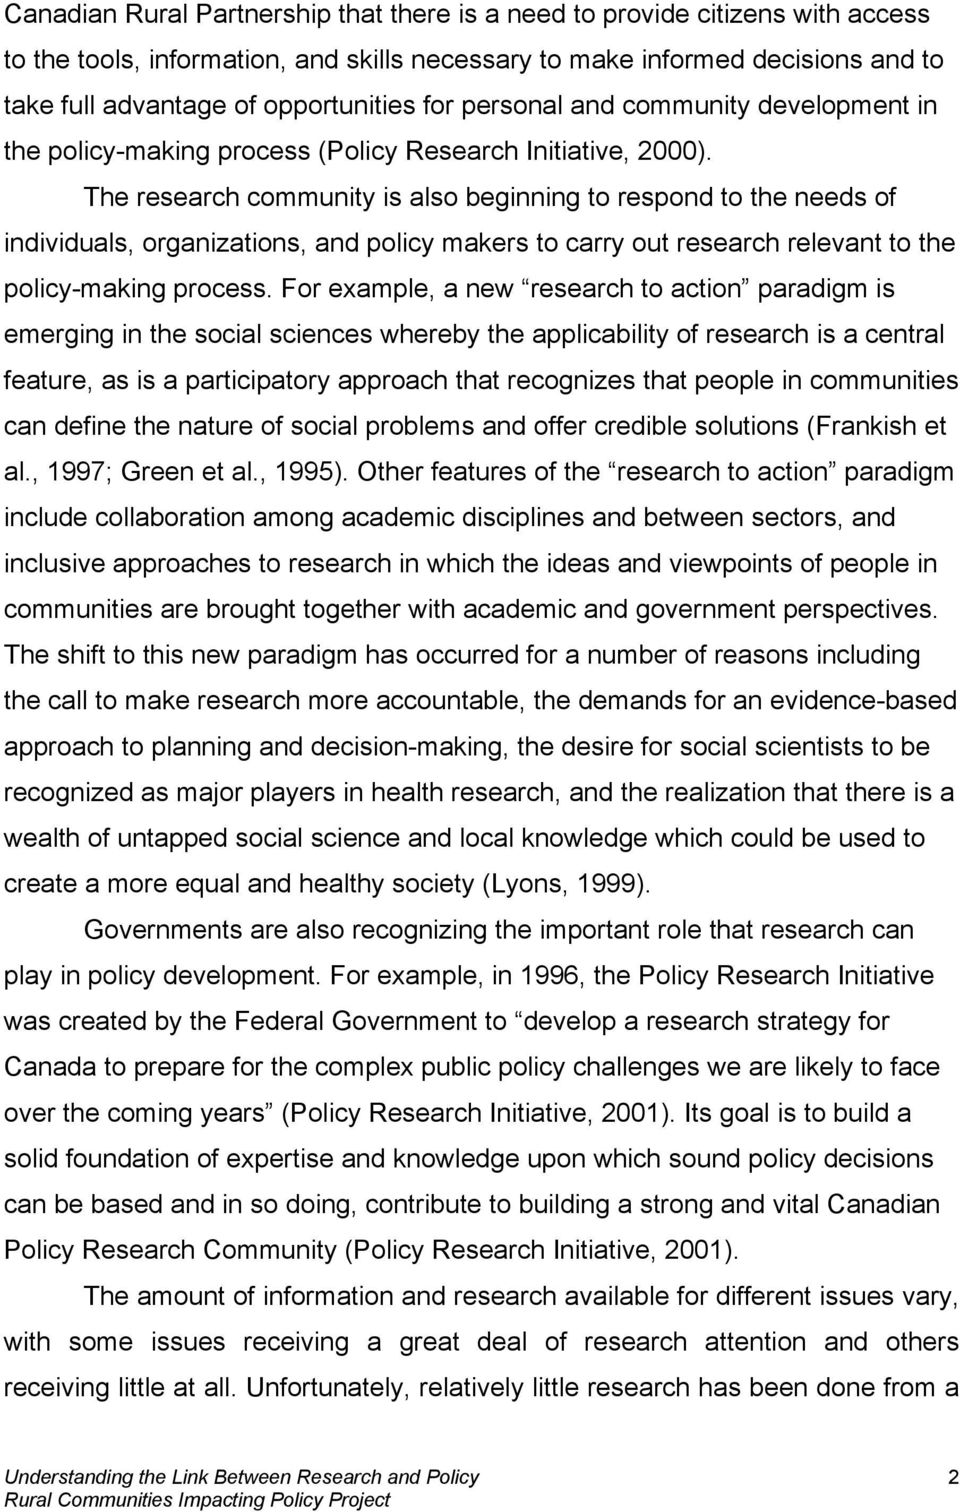 The research community is also beginning to respond to the needs of individuals, organizations, and policy makers to carry out research relevant to the policy-making process.